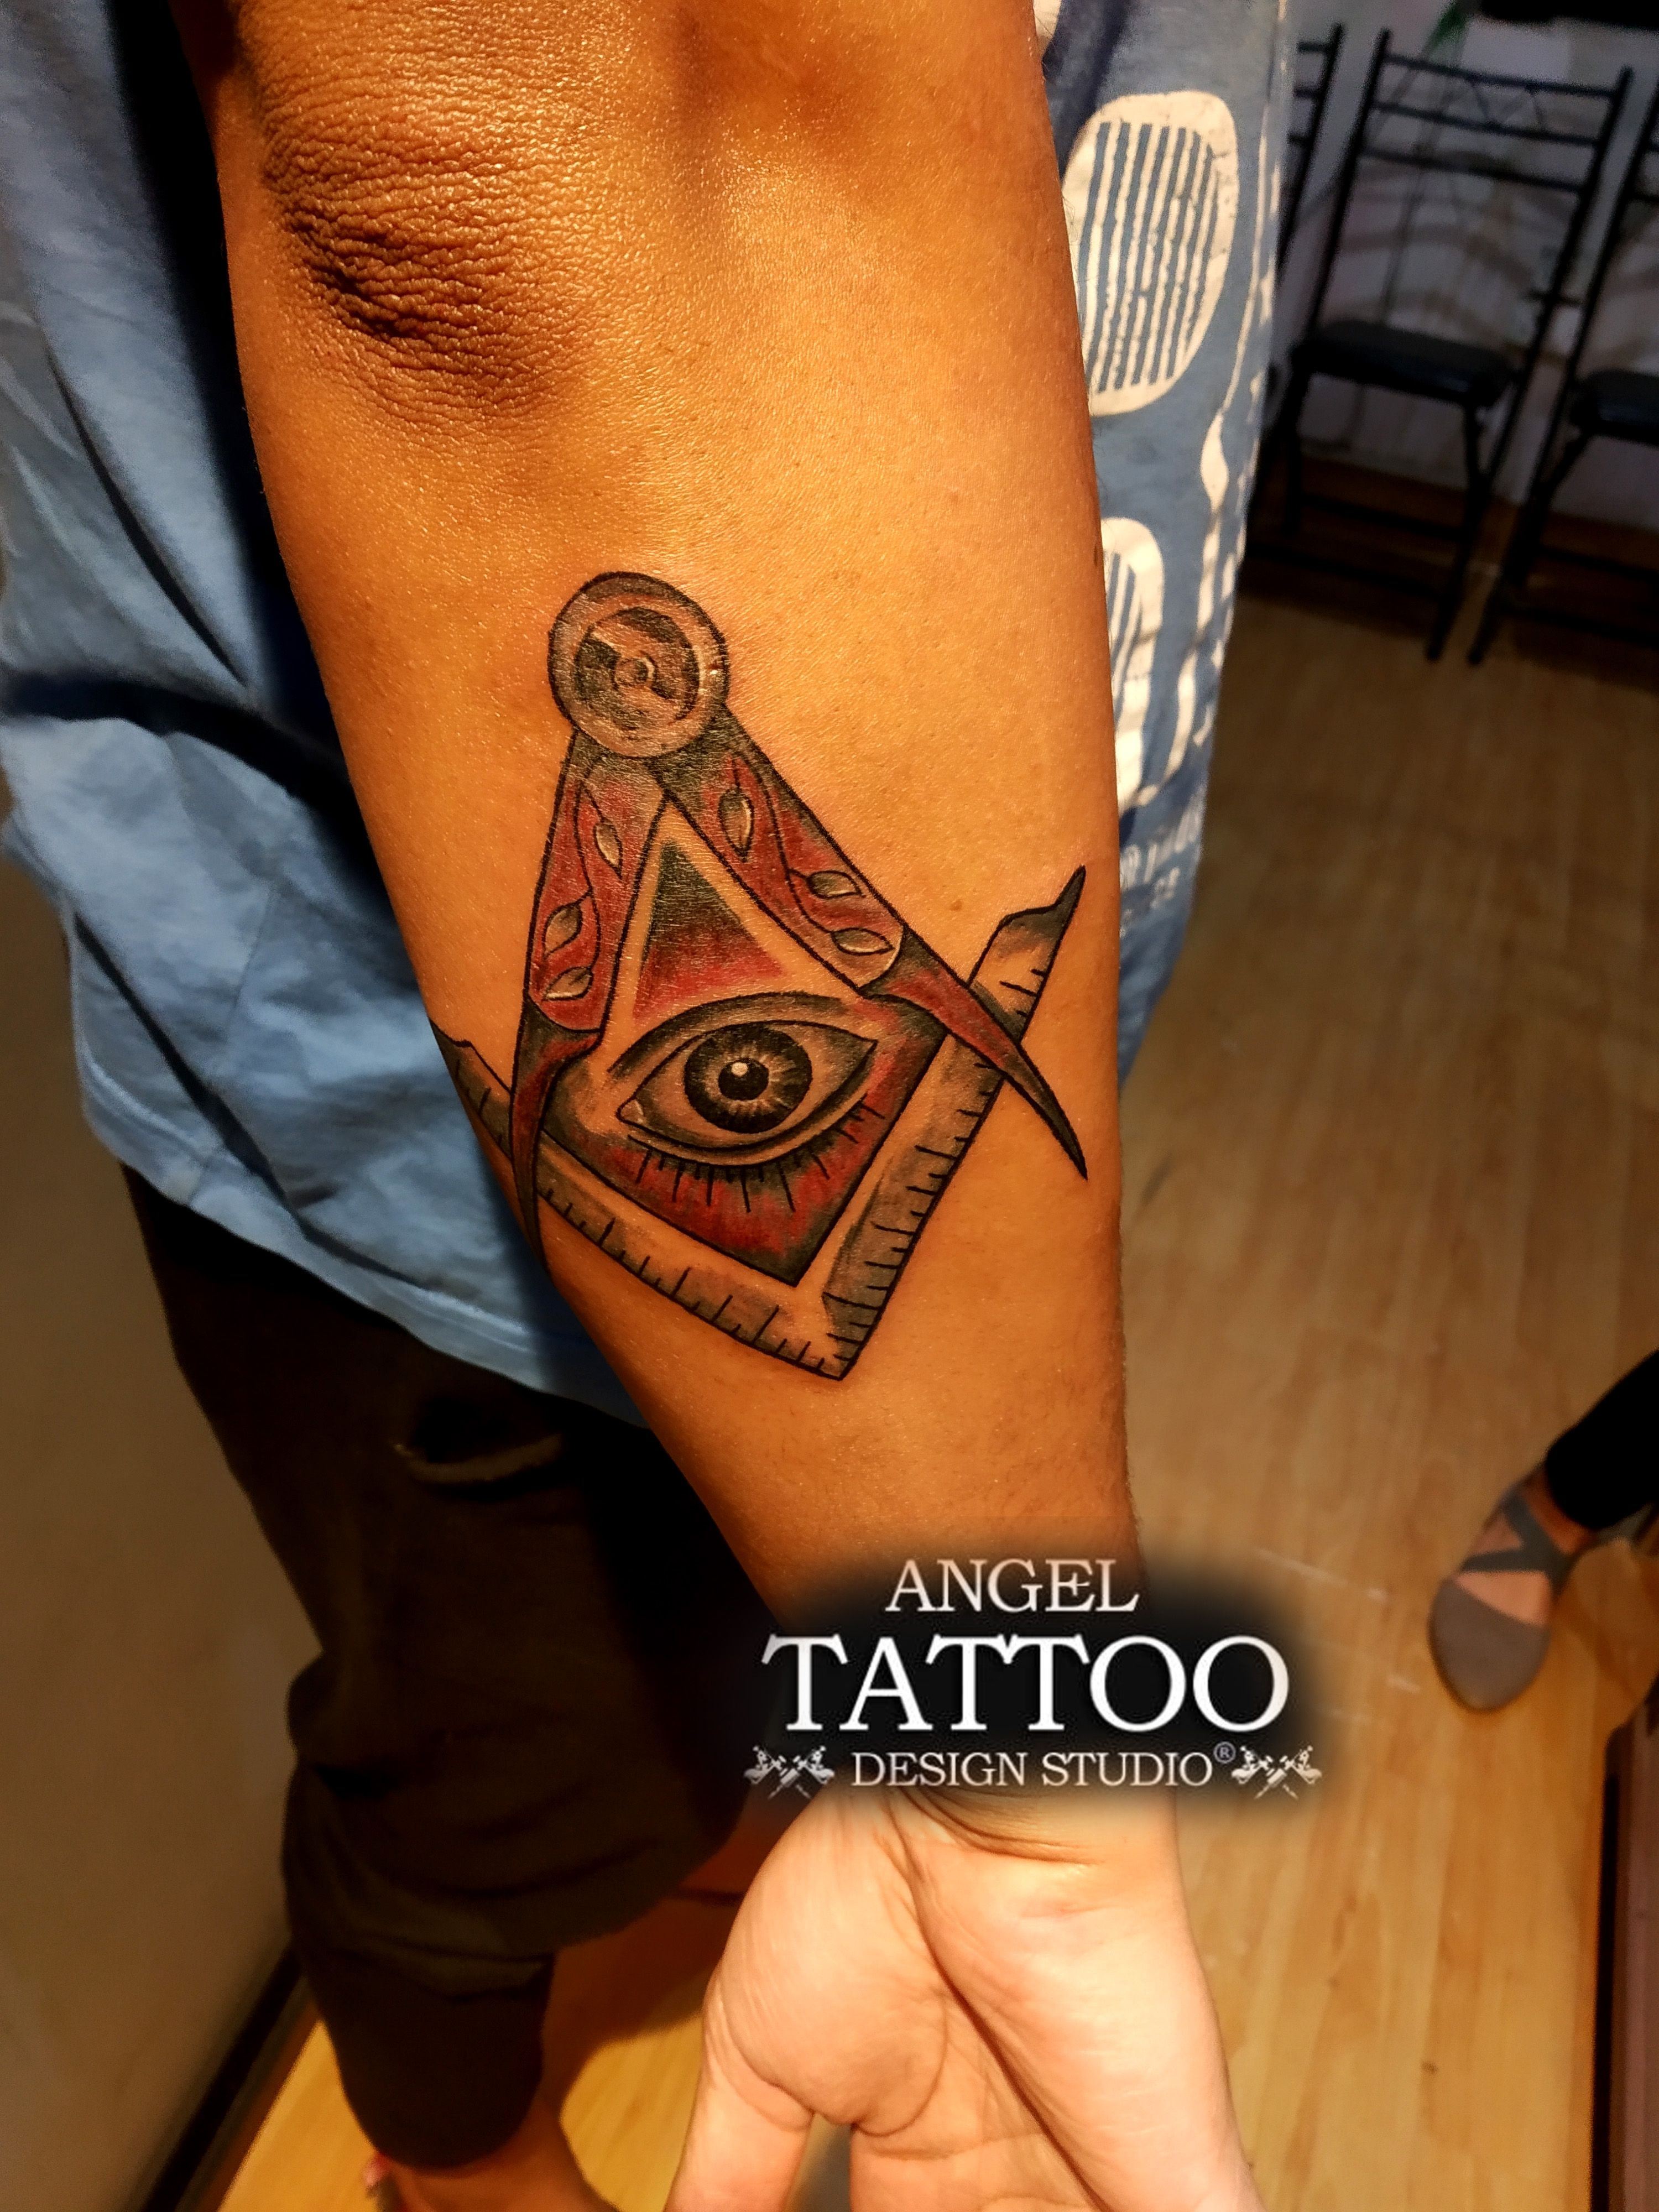 Made this tattoo in gurgaon; call 8826602967 for